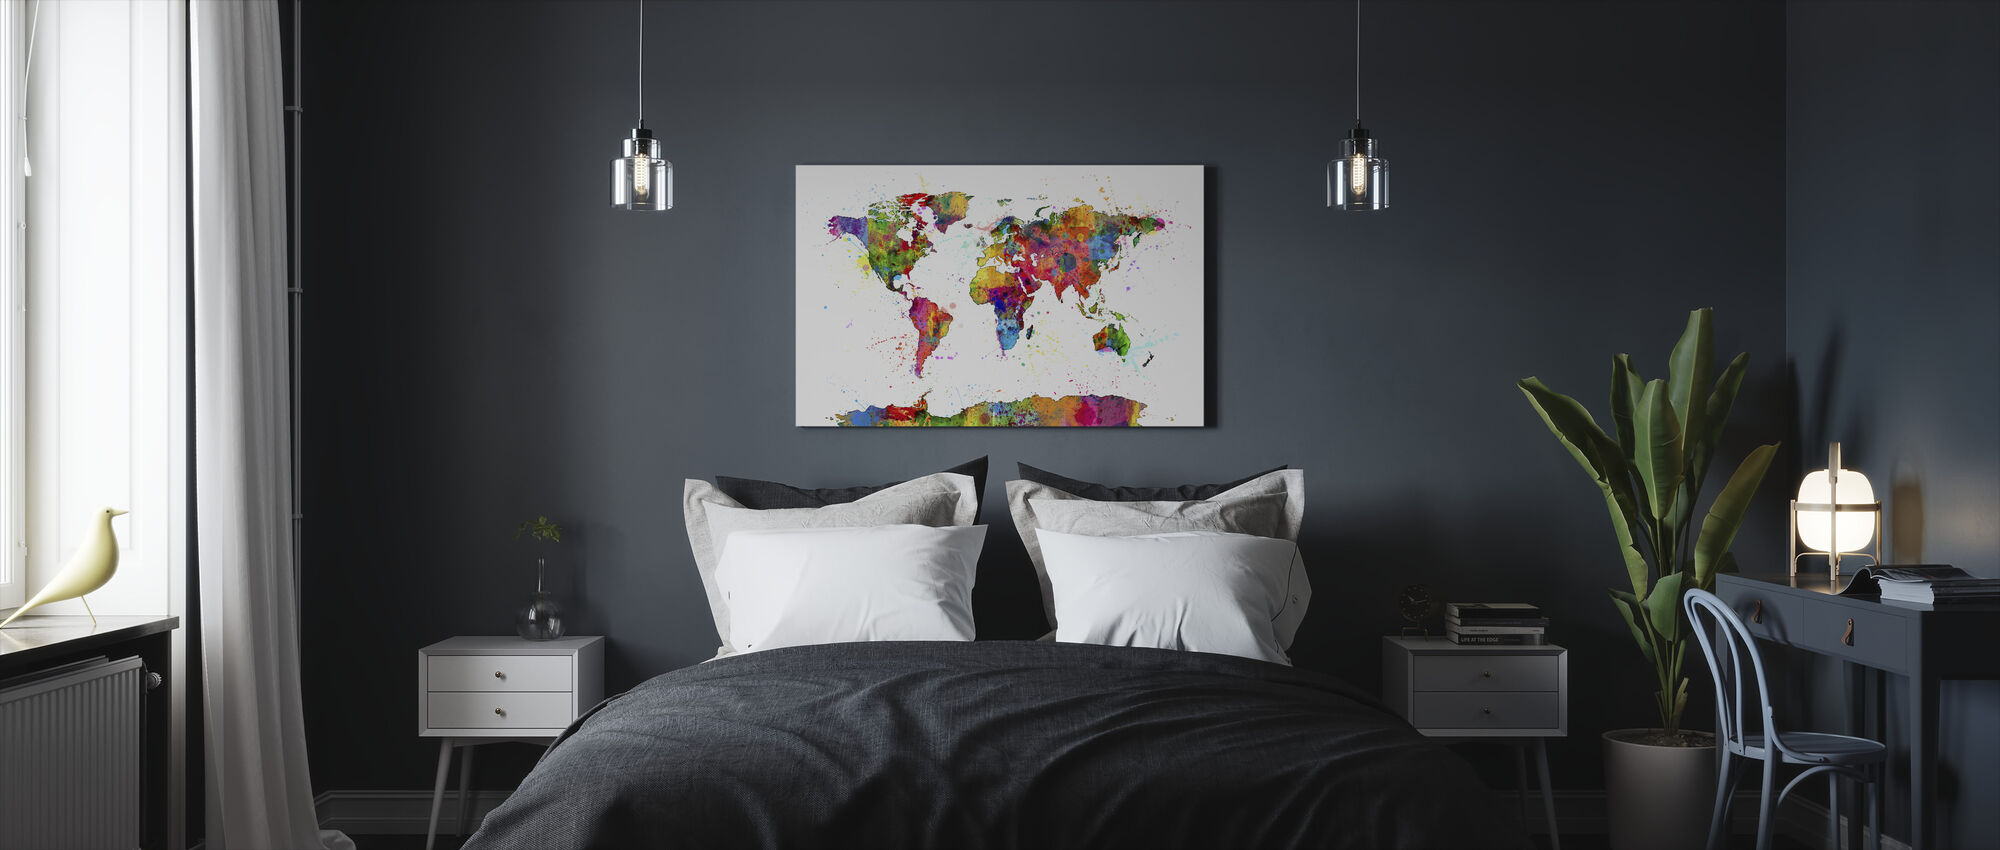 Paint Splashes Map 2 - Canvas print - Bedroom